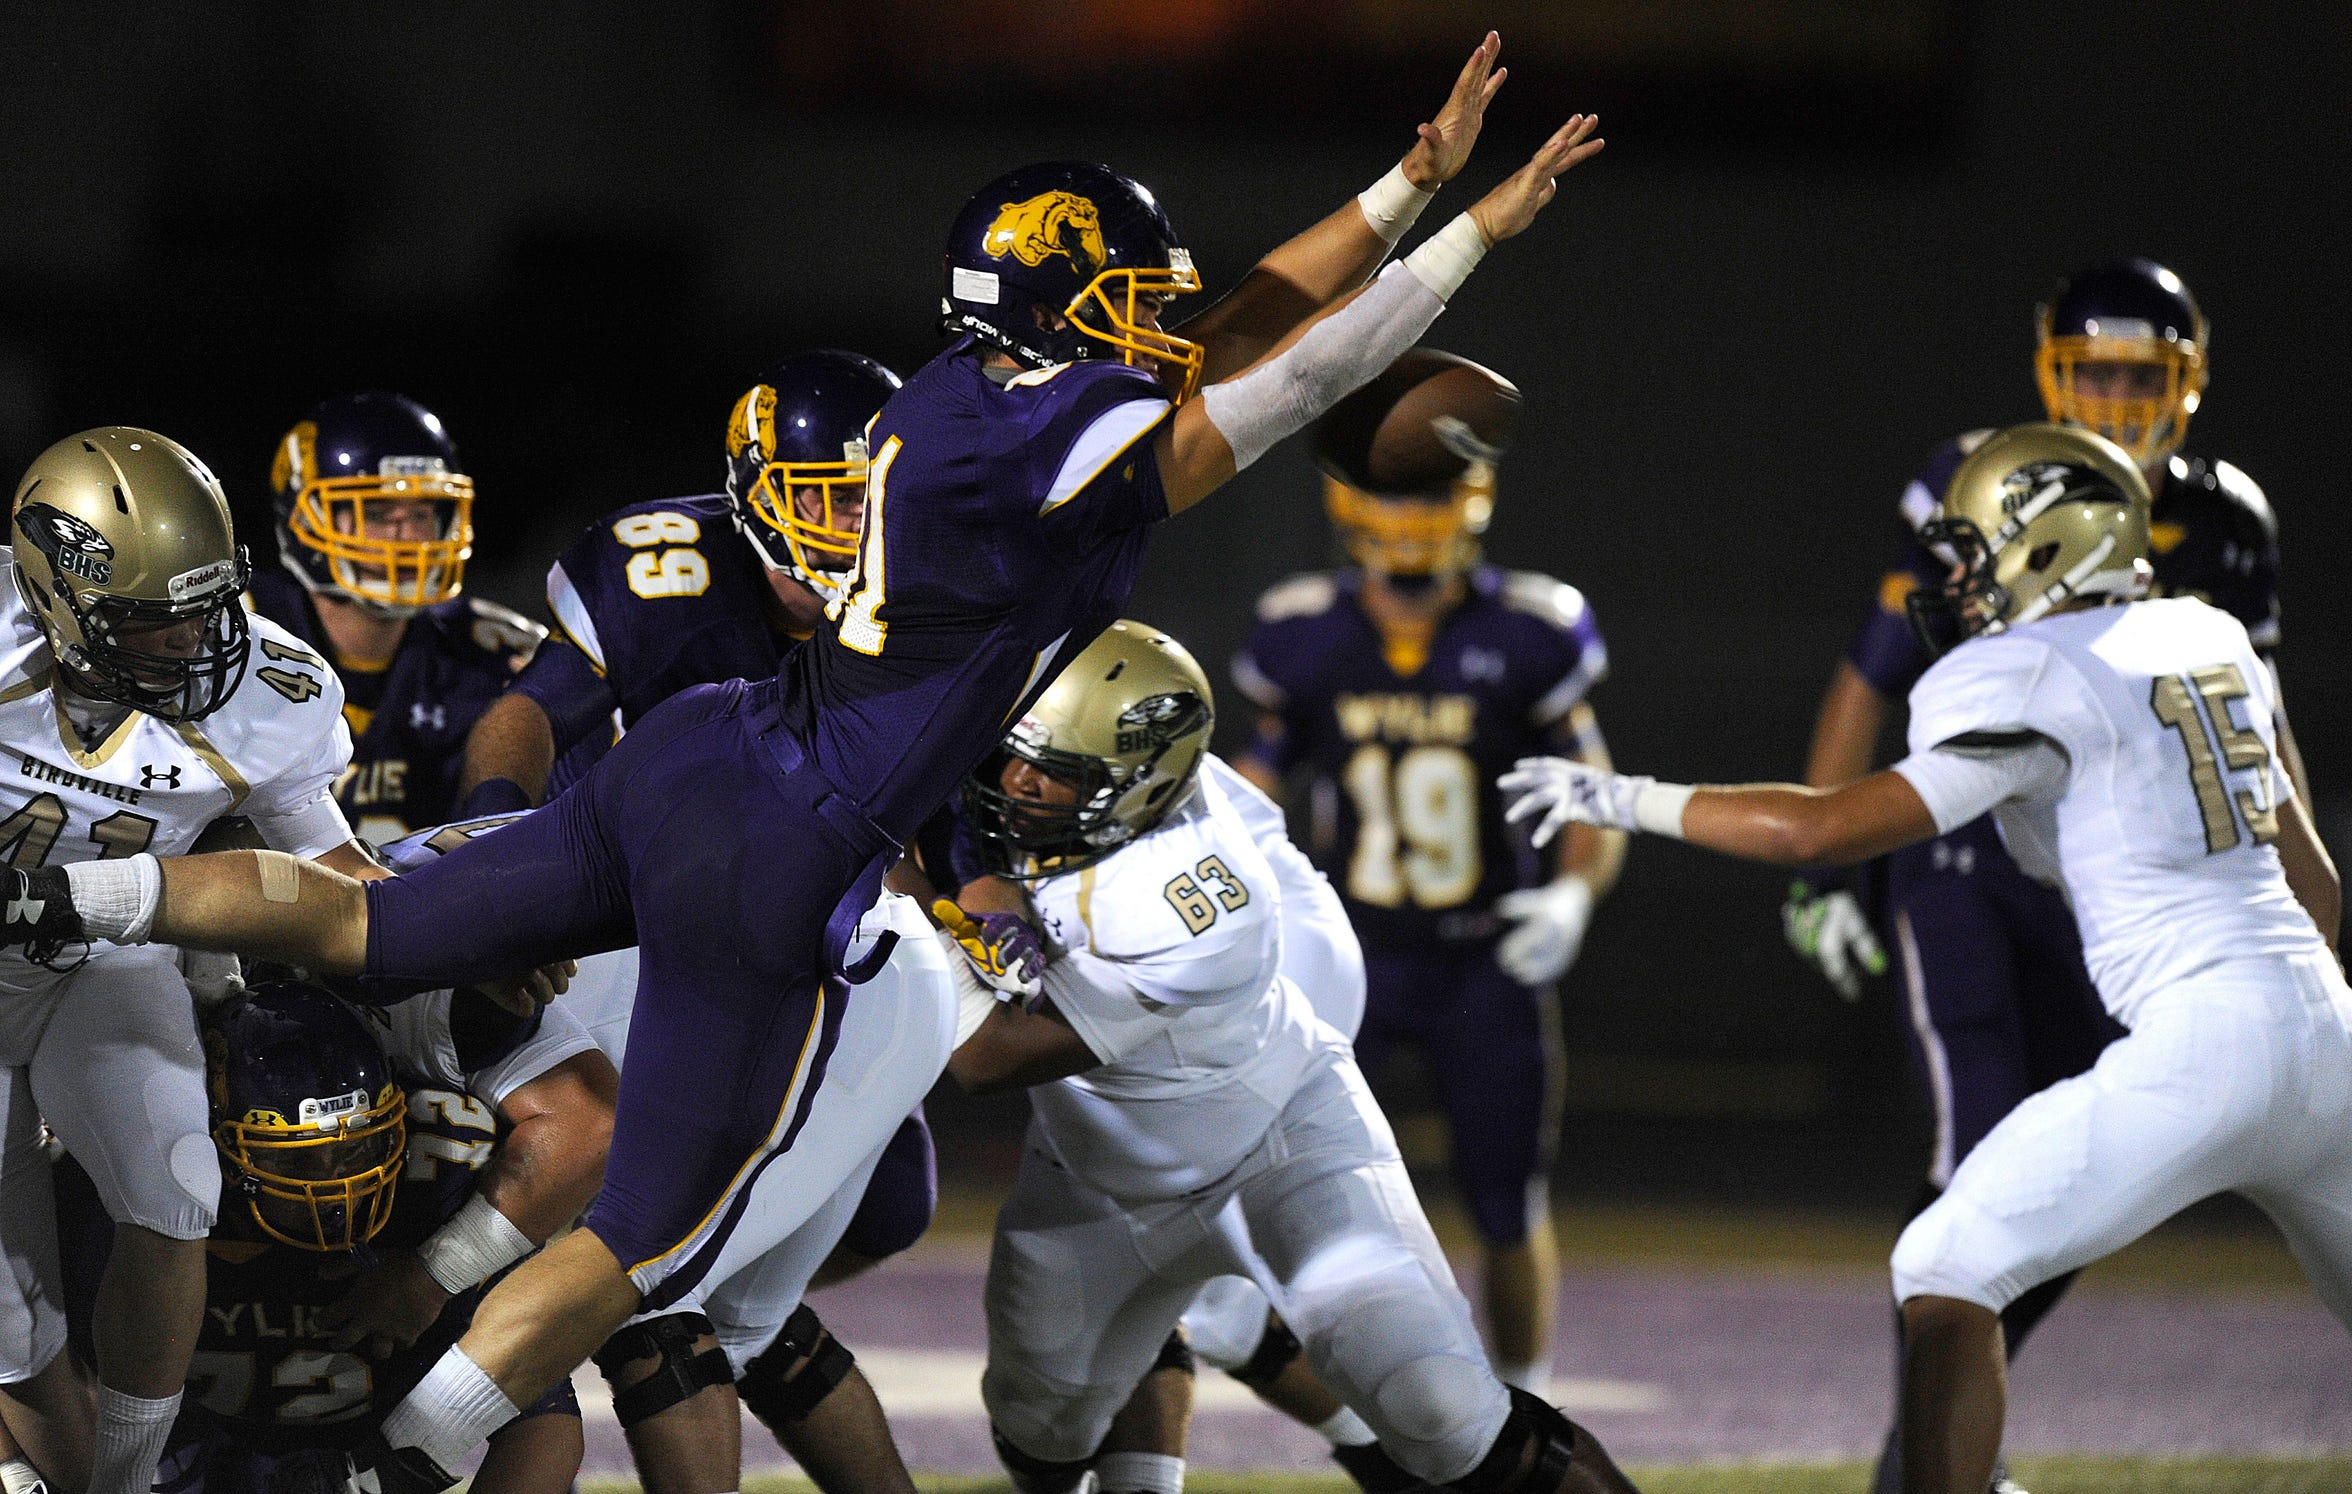 Former Wylie linebacker Clay Johnston (81) blocks a PAT attempt during a 2014 win against Birdville. Johnston is set to begin his junior year at Baylor this season when ACU travels to Waco on Saturday, Sept. 1, 2018.